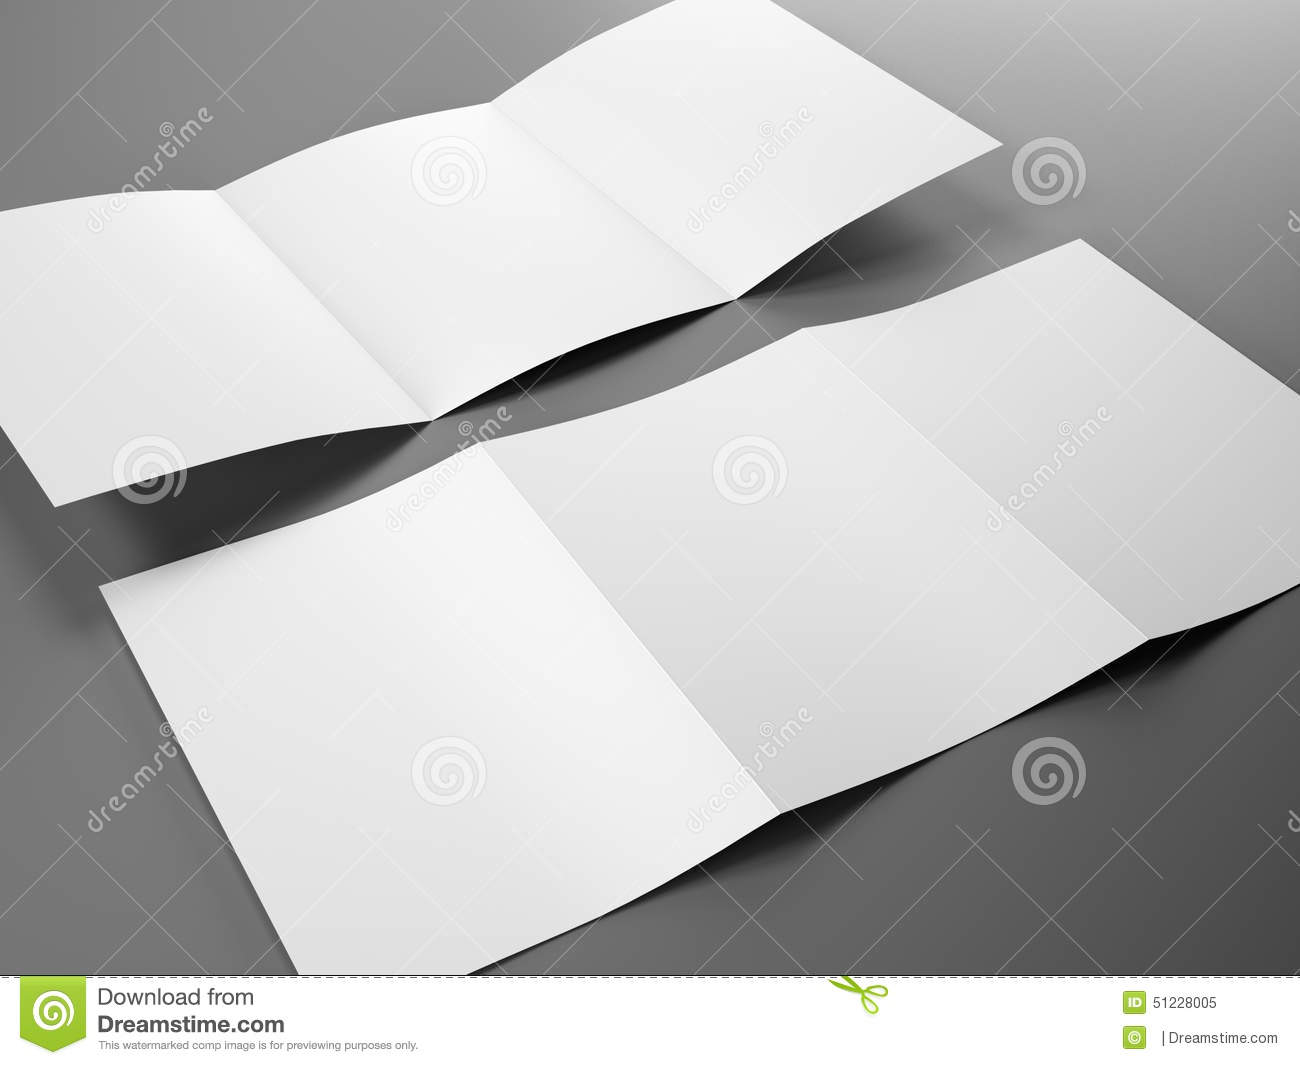 Blank Template Of Trifold Brochure A4 Size Illustration – Free Blank Tri Fold Brochure Templates